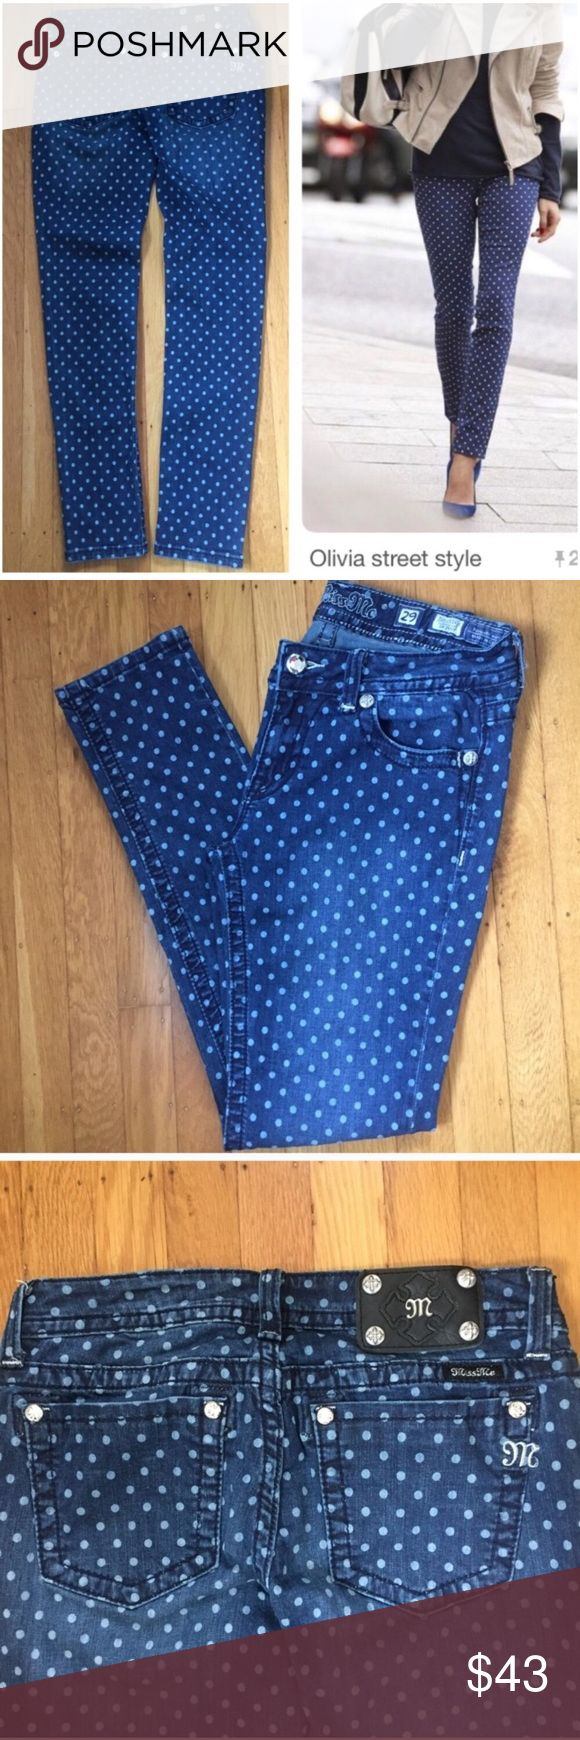 Miss Me Jeans Poka Dot Skinny Jeans. Miss Me Jeans Poka Dot Skinny Jeans. Pic one shows example of Poka Dot Jean outfit on right and jeans for sale on right.  Jeans have darker and lighter areas that can be seen when enlarging pictures.  So pretty. Miss Me Jeans Skinny